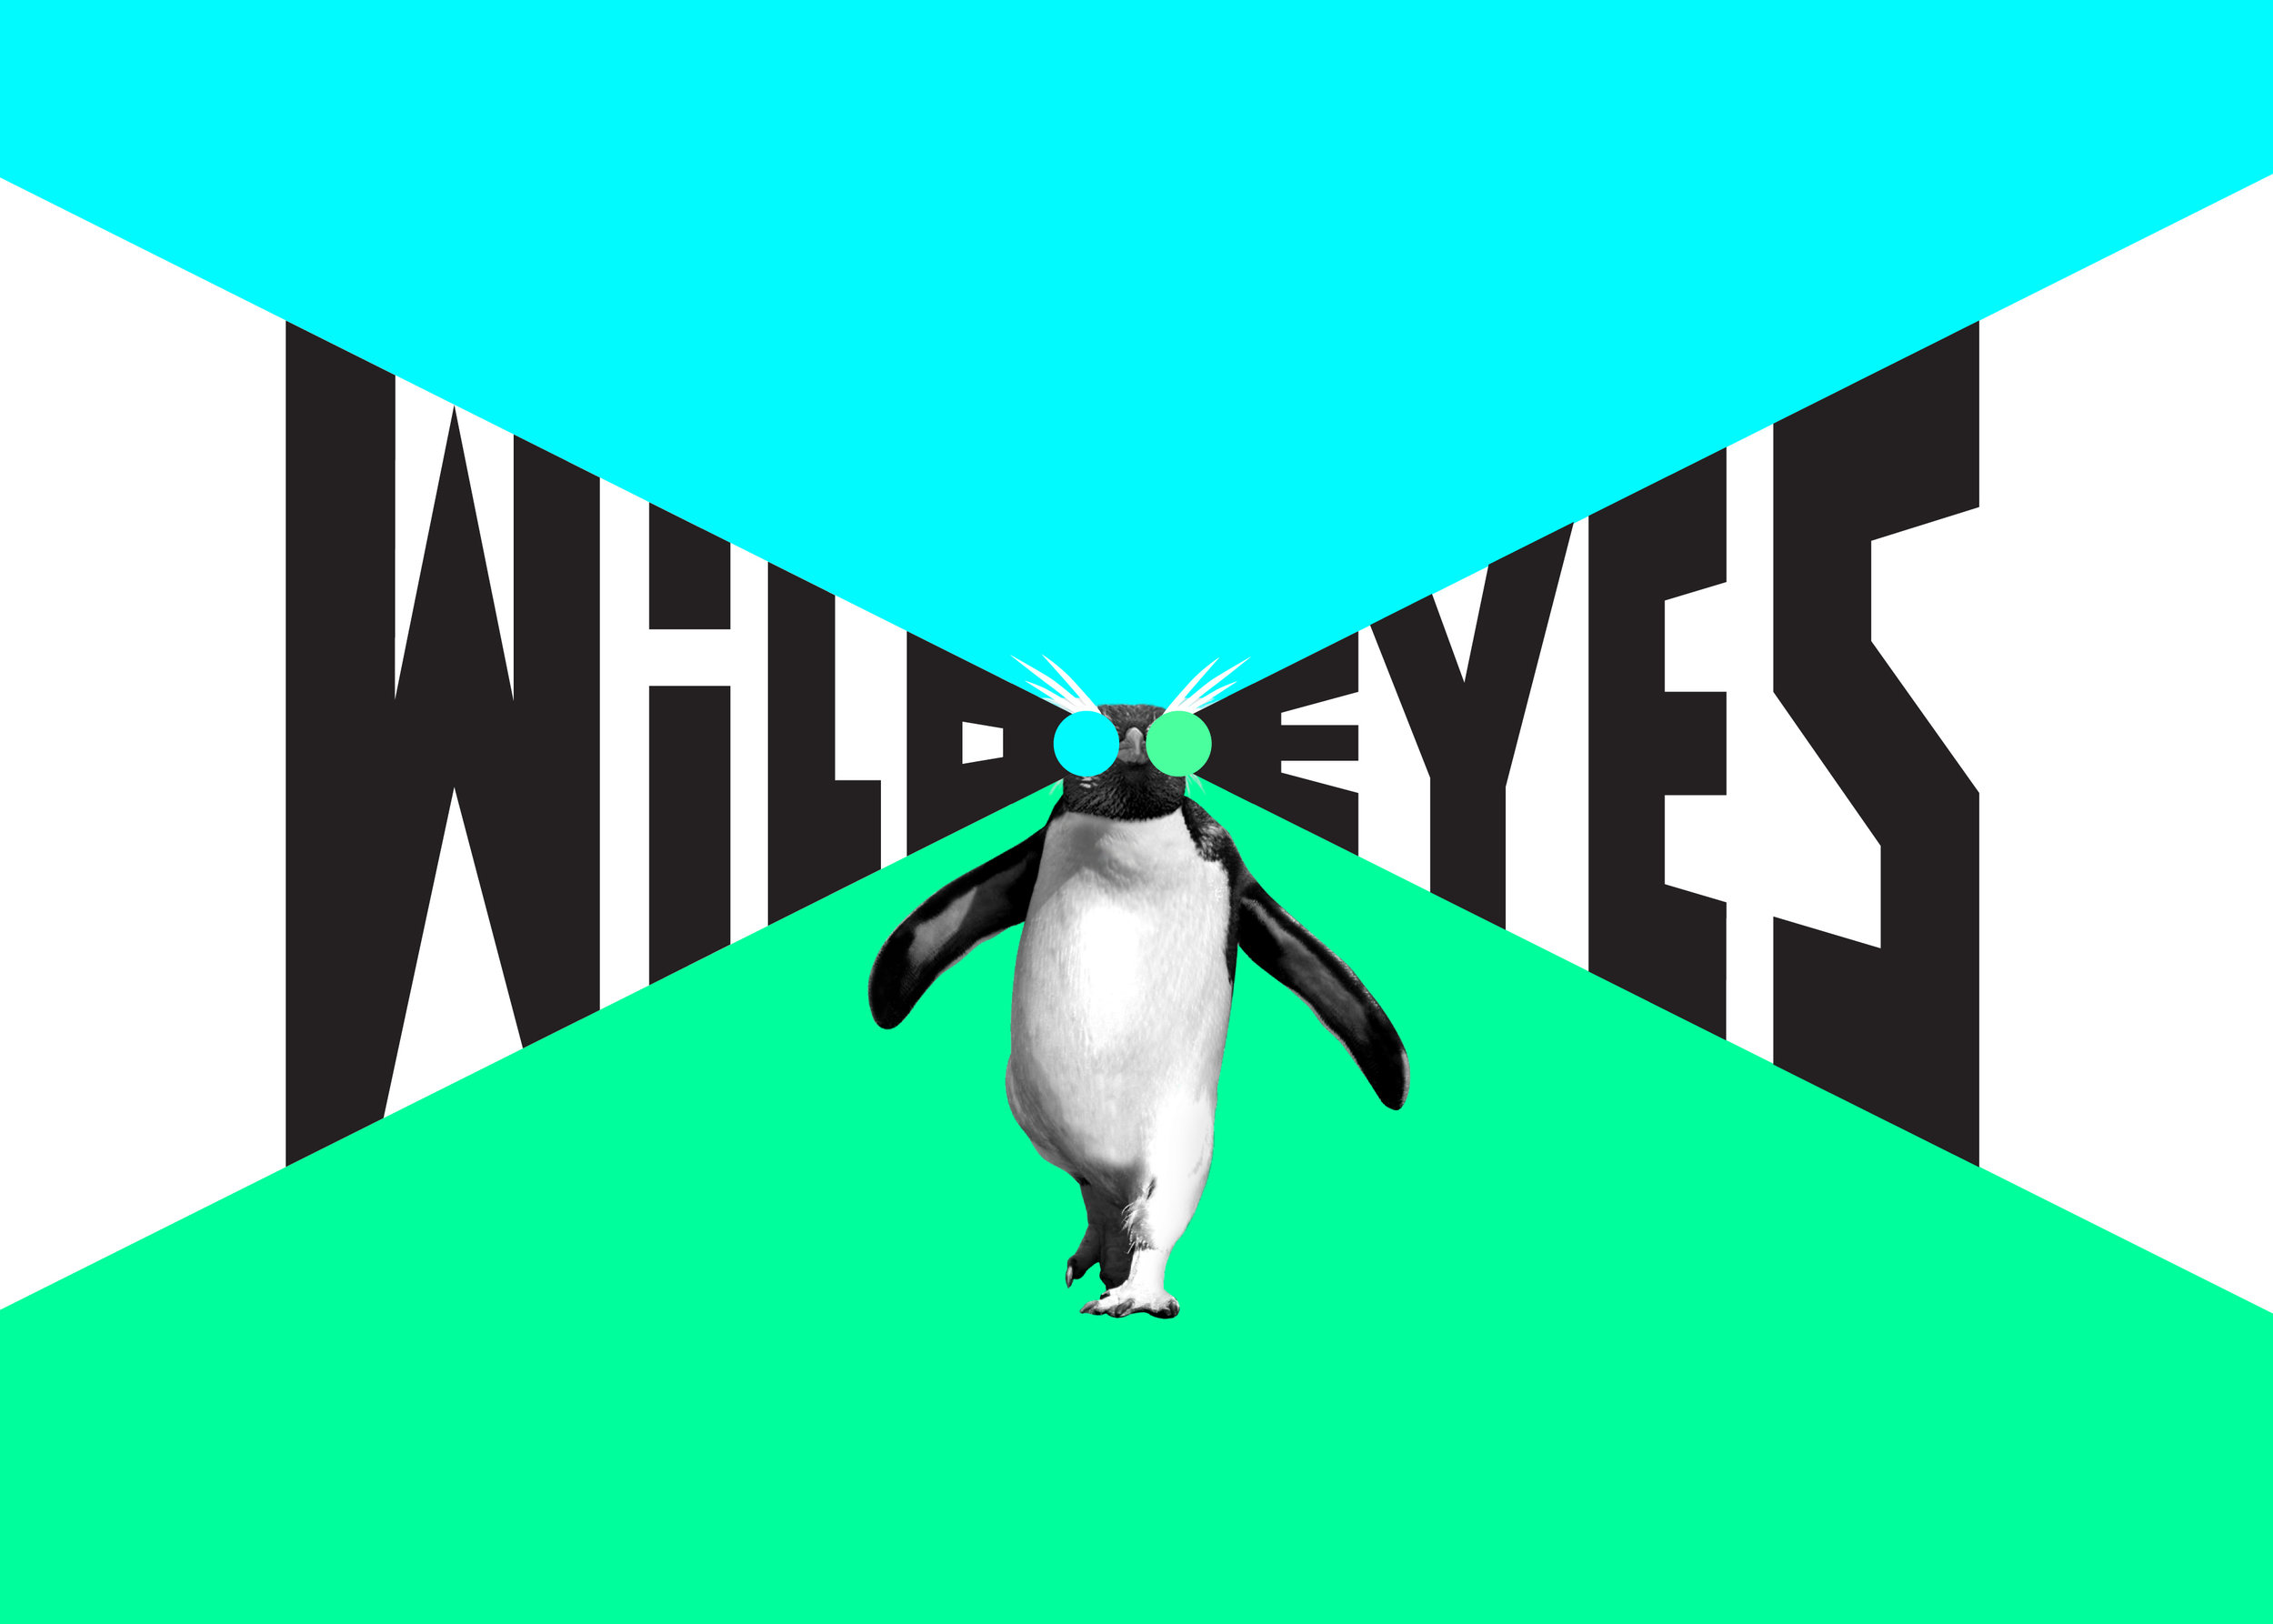 Wild Eyes is a social media platform for Kiwi kids. The lazer eyes inspired work won Silver at the Best Awards. Designed with Salted Herring,